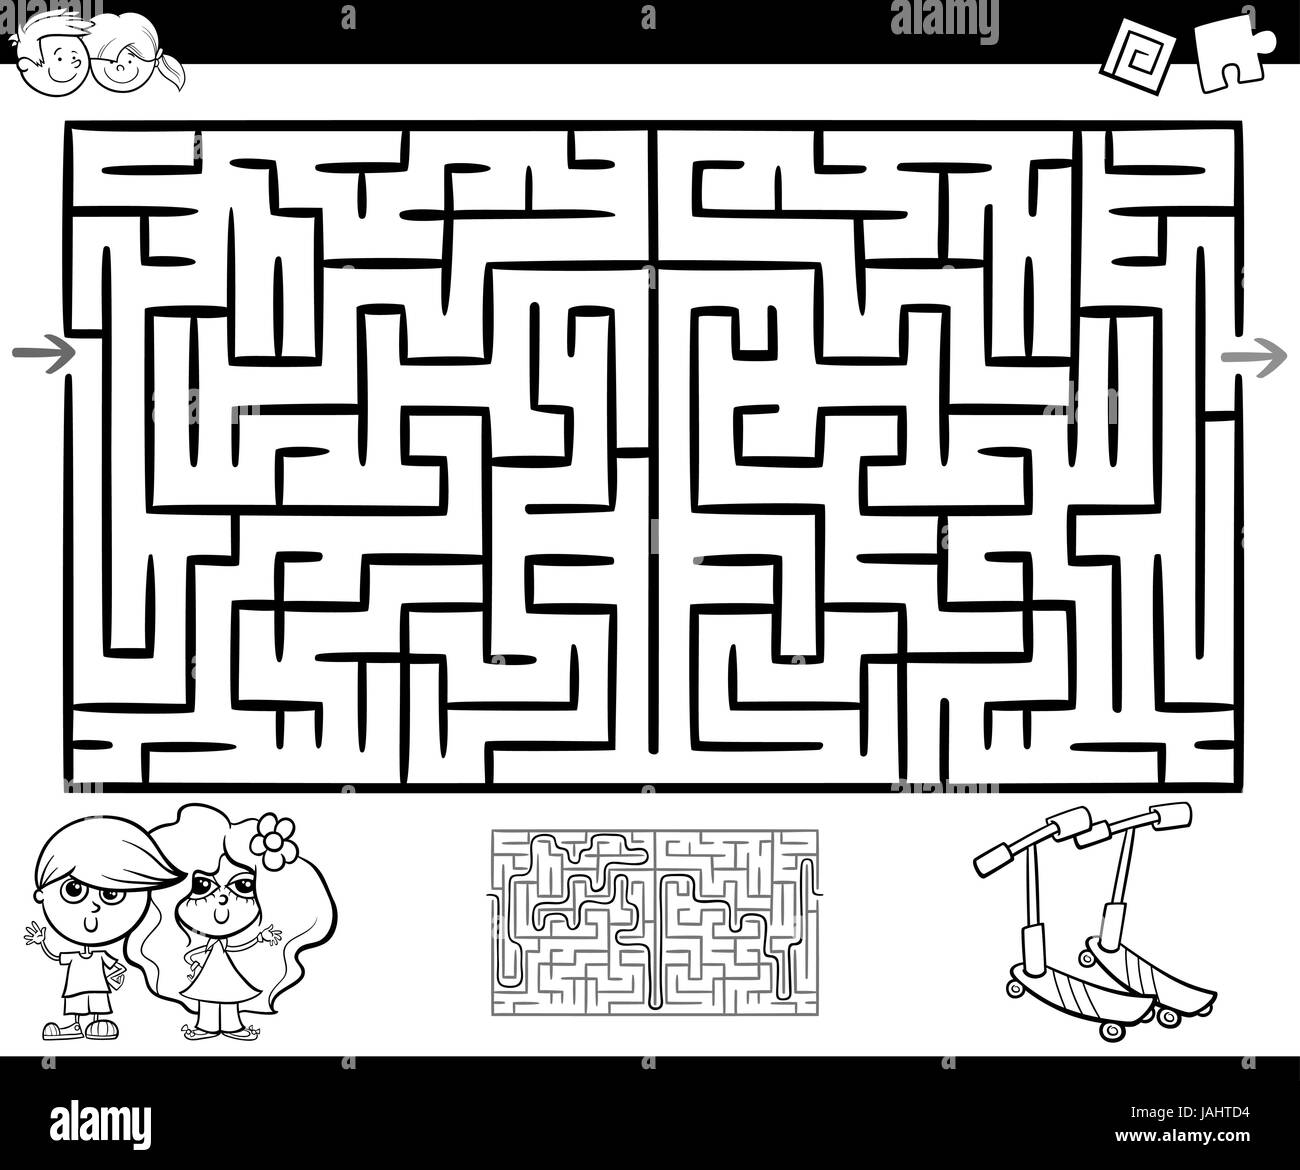 cartoon illustration of education maze or labyrinth game for